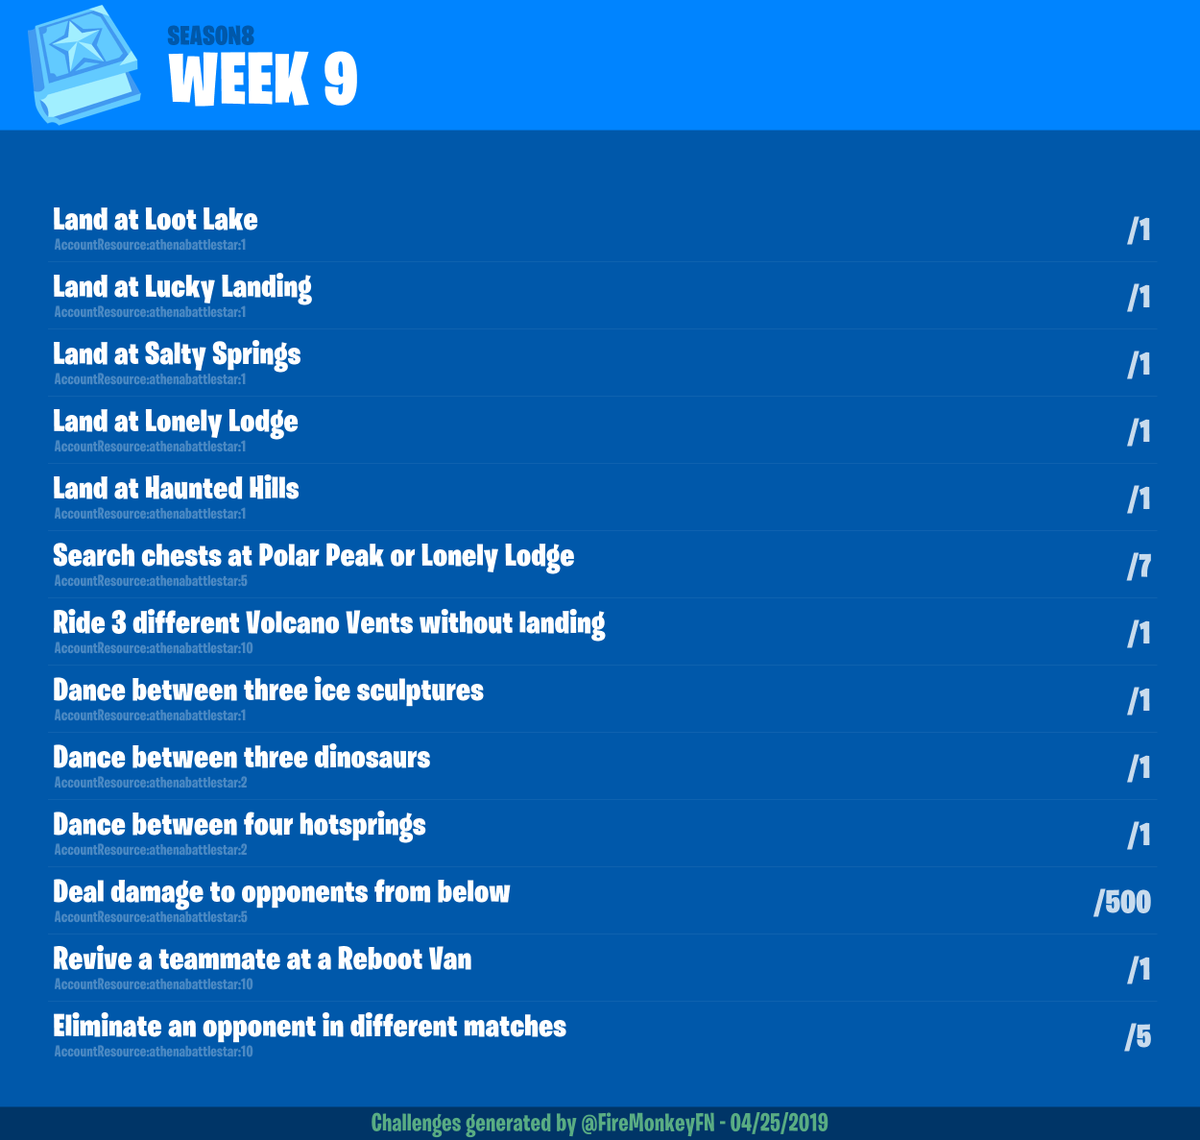 Fortnite Week 9 Challenges Dance Between 3 Dinosaurs